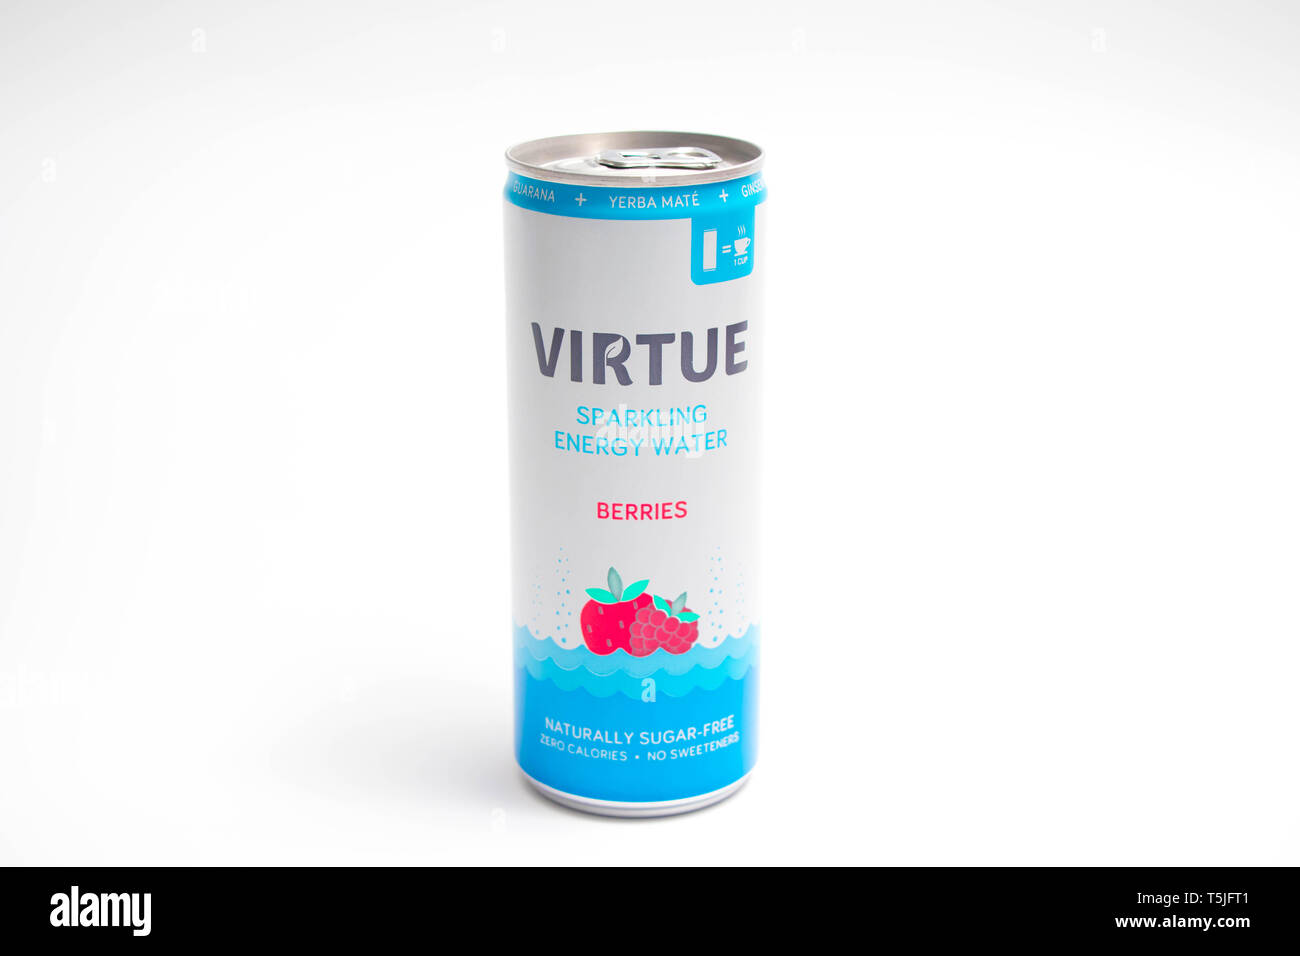 Vertu de l'eau pétillante pouvez energy drink Photo Stock